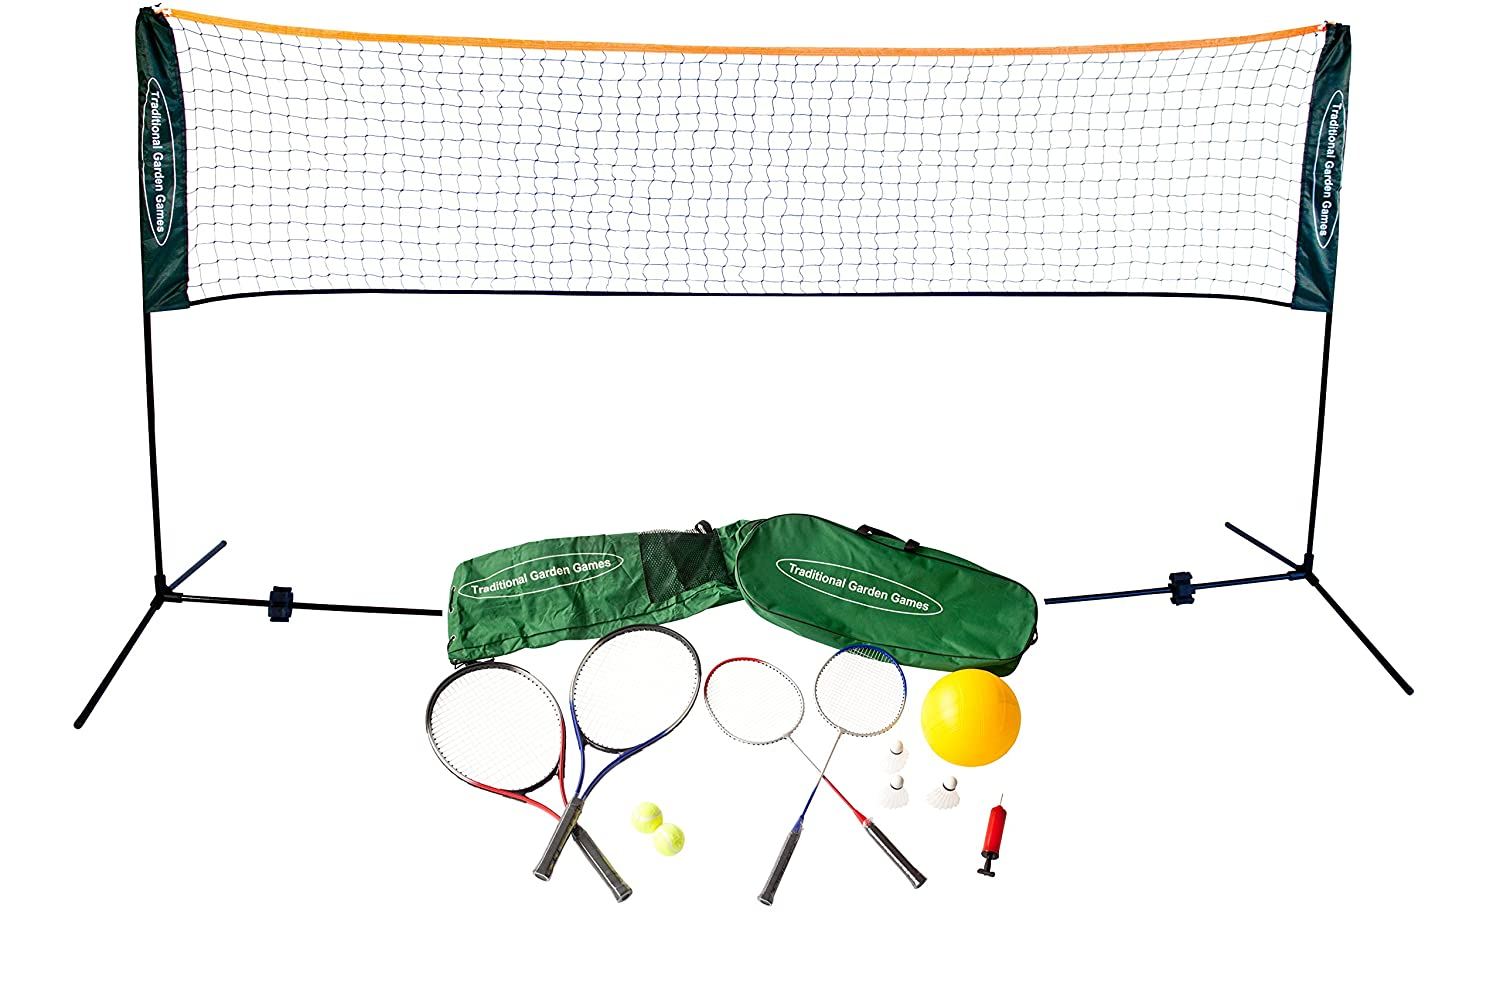 Traditional Garden Games 3 m Badminton Volleyball und Tennis Spielset